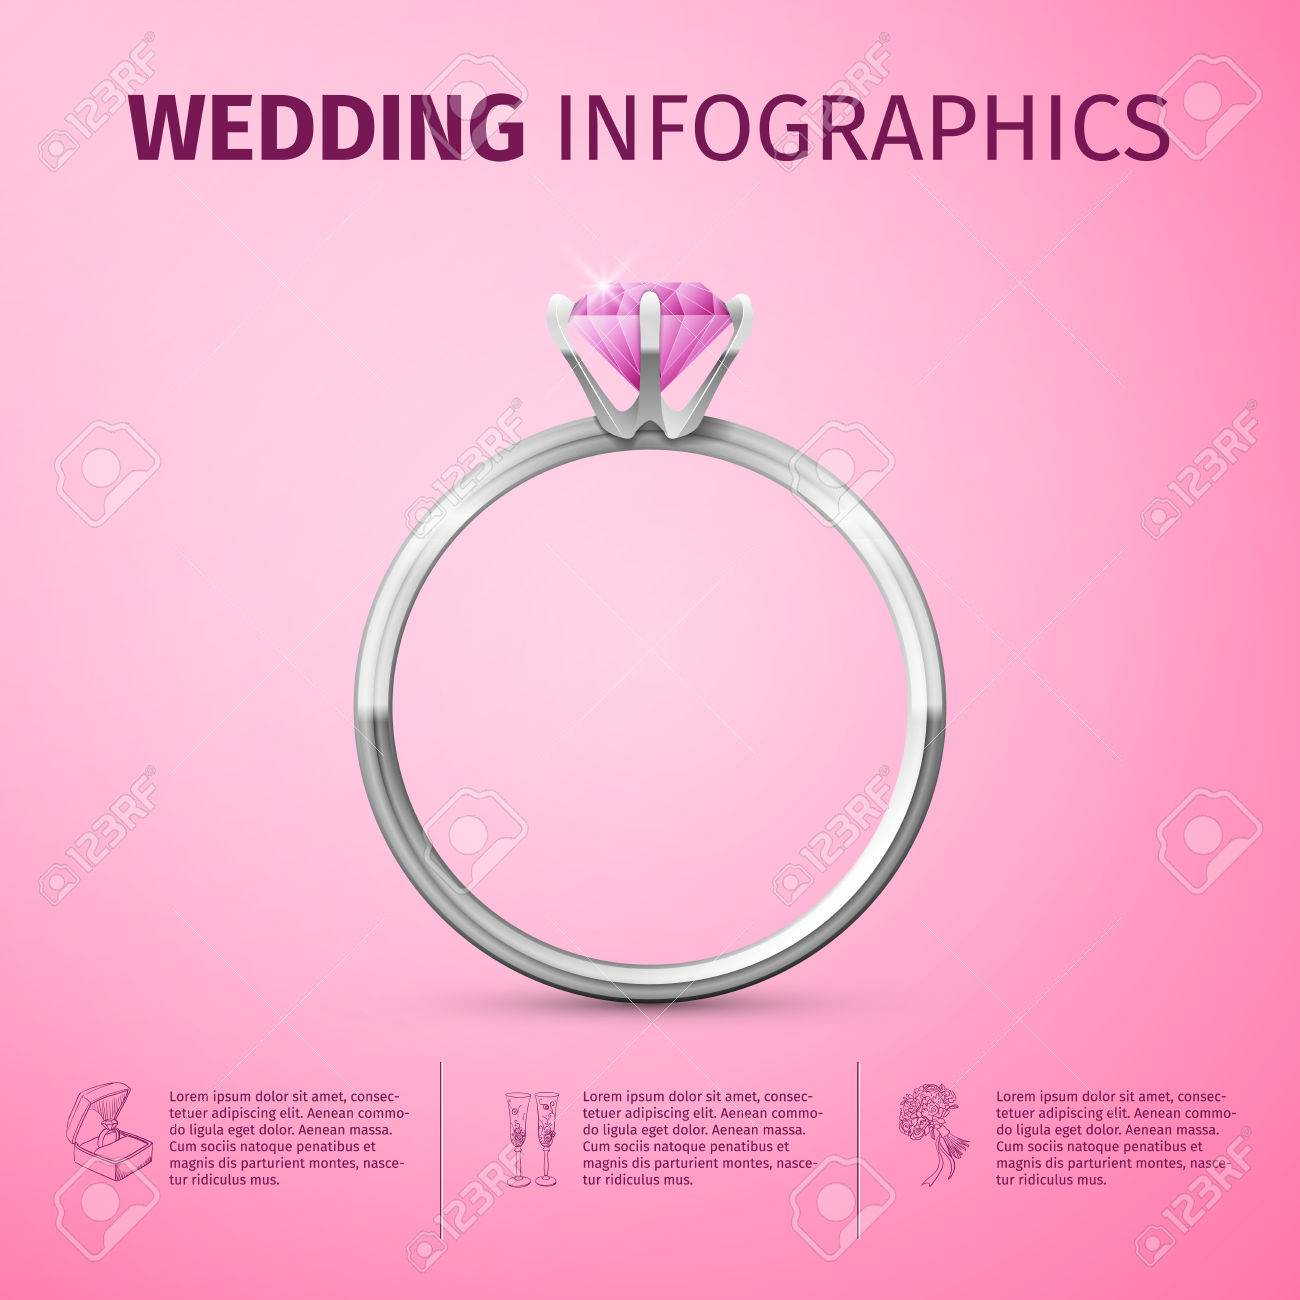 Wedding Infographic With Diamond Ring. Wedding Day Coast Statistics ...